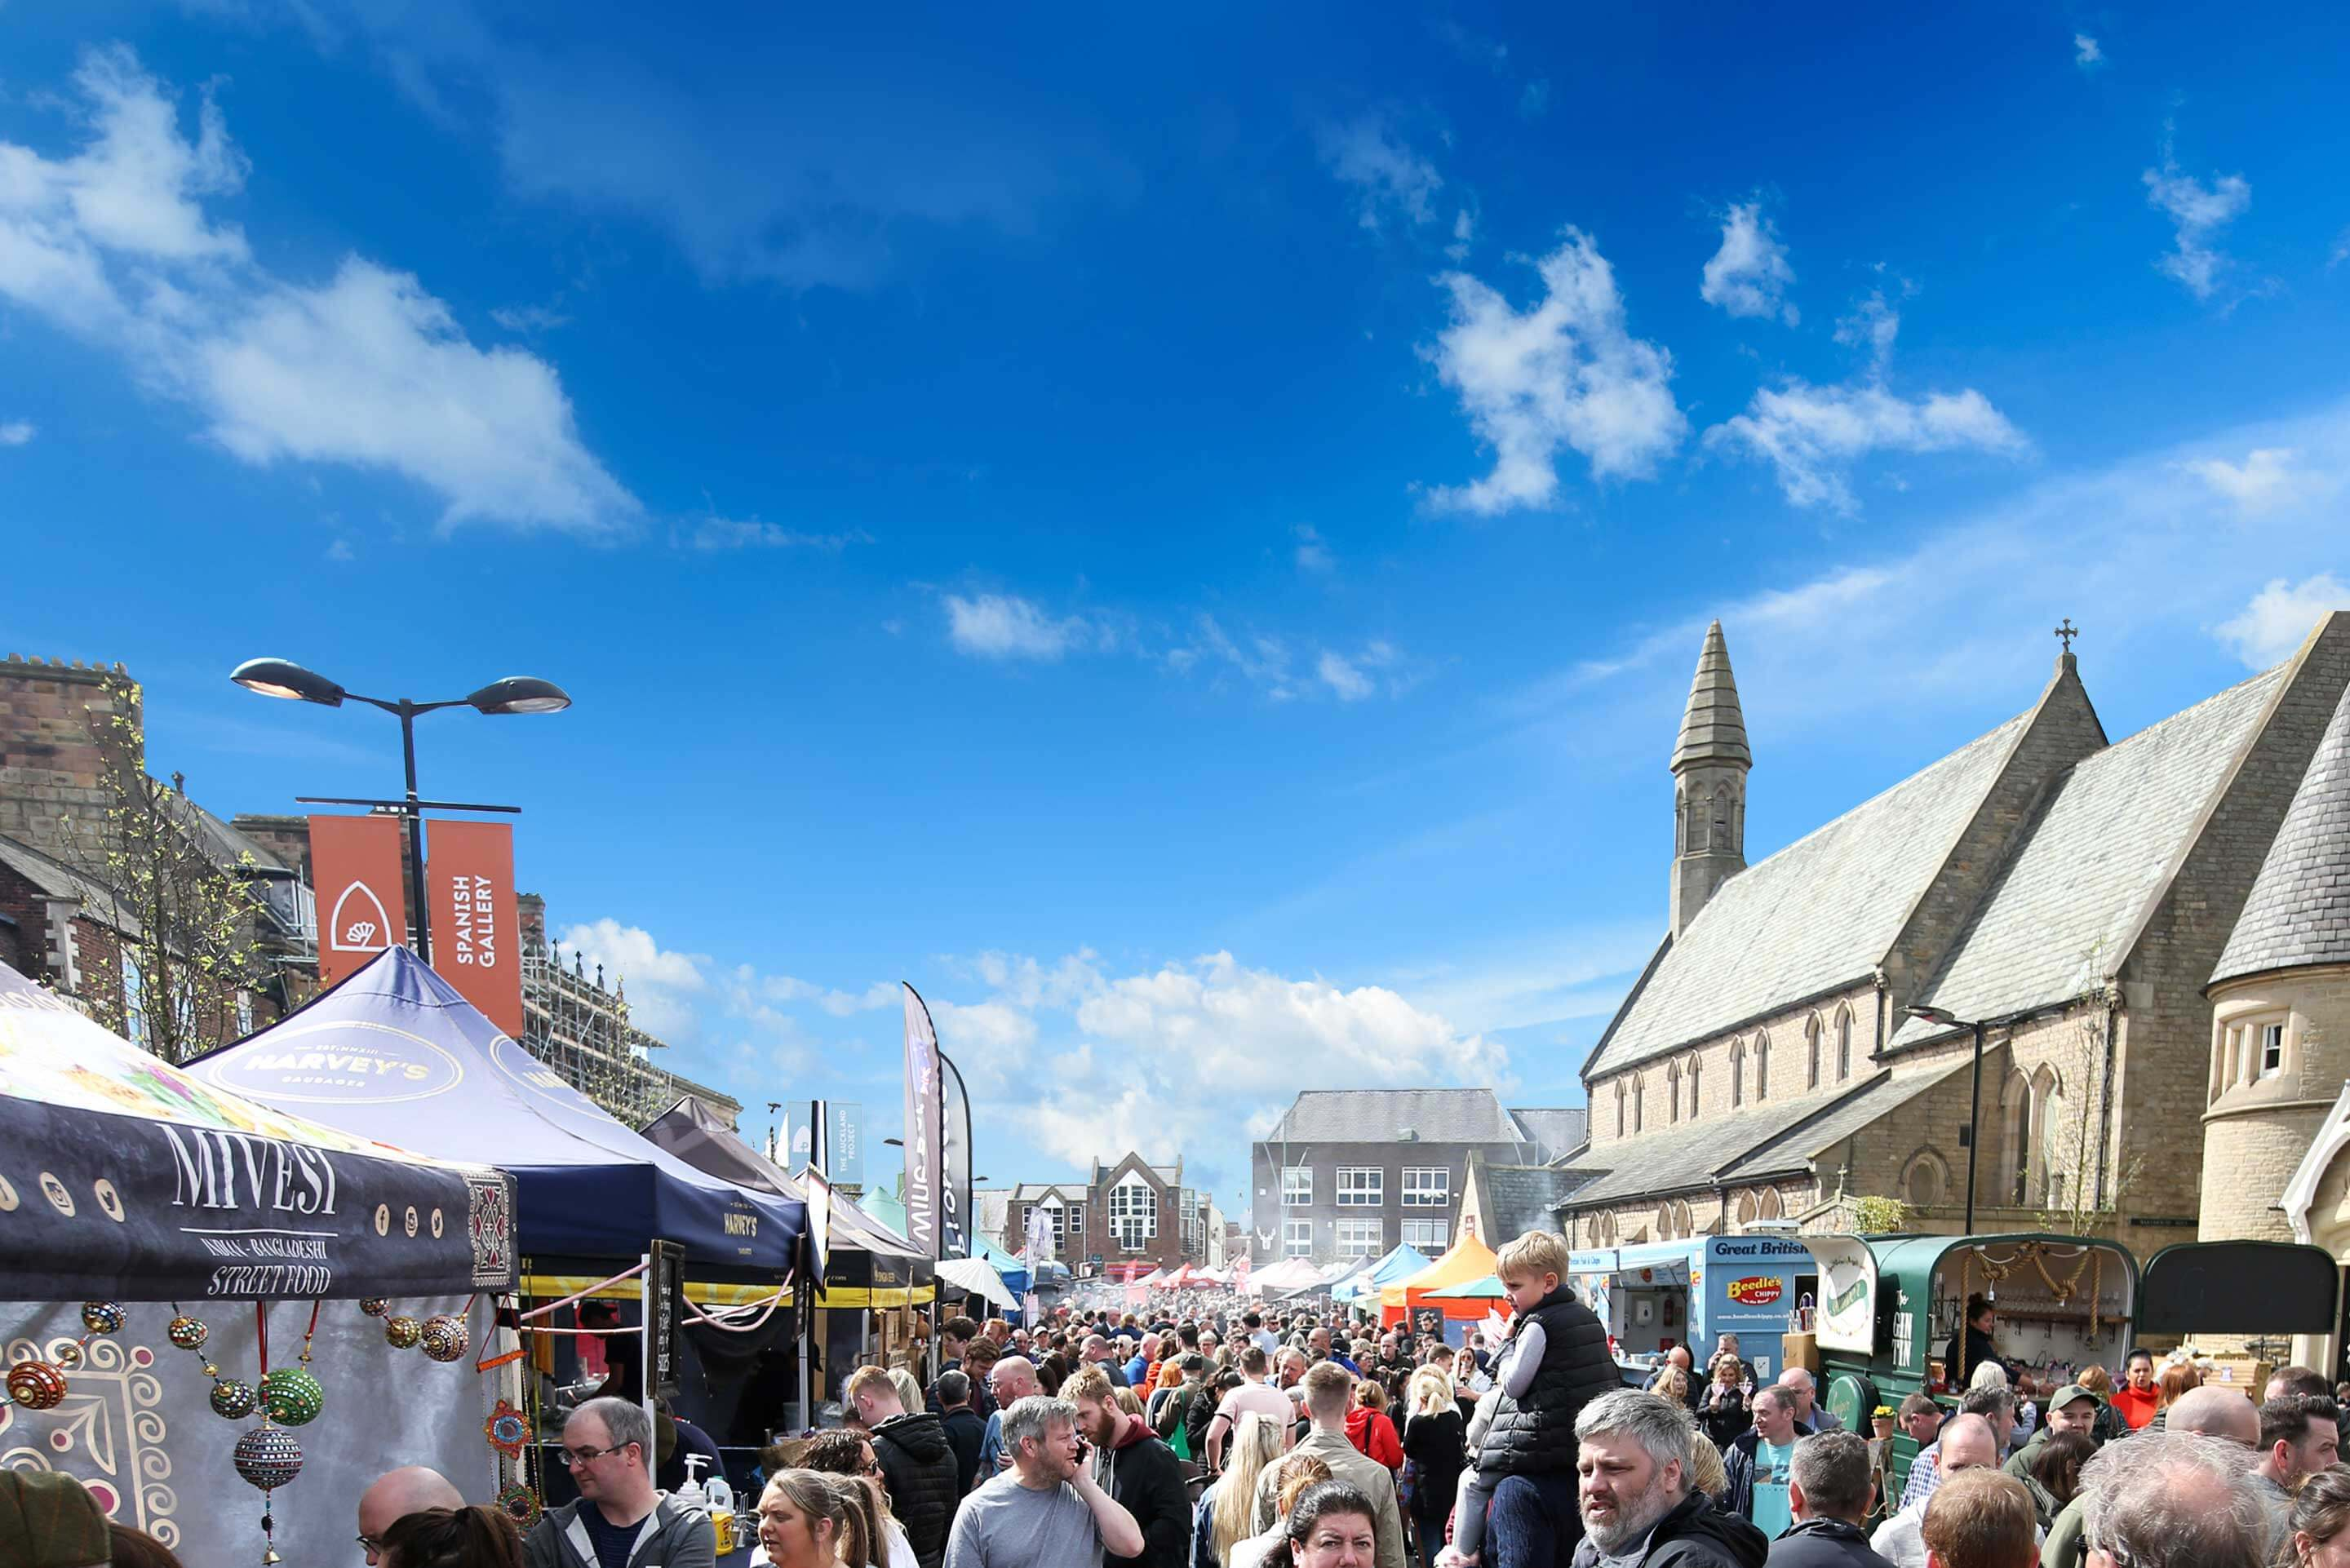 Bishop Auckland Food Festival Crowd